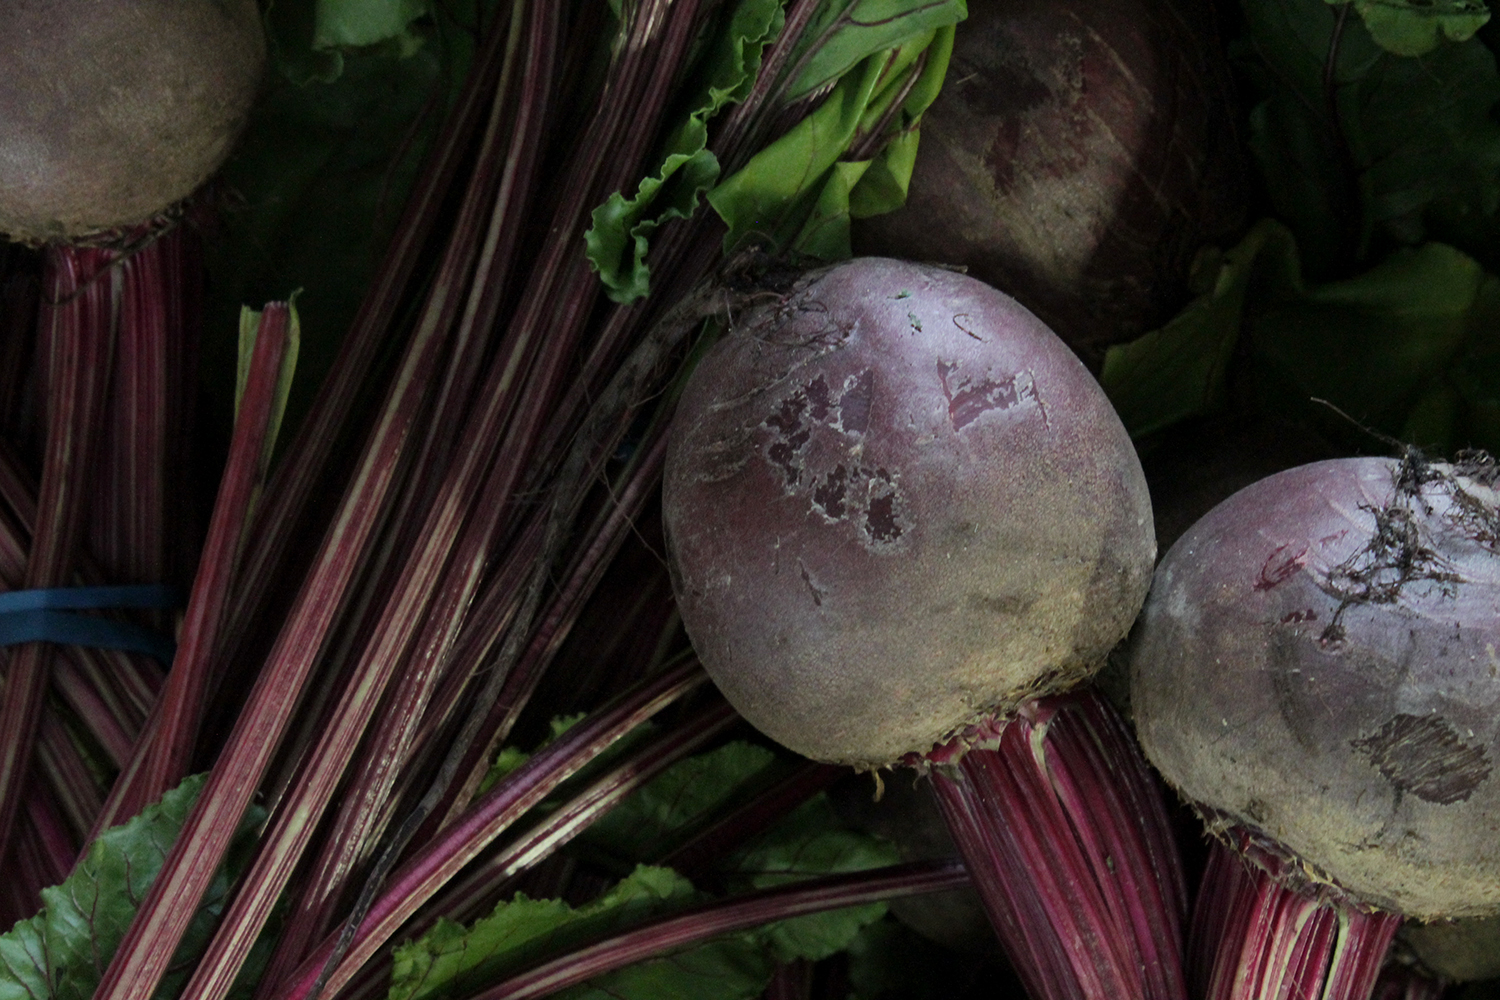 Beets sold at Robt. t. Cochran & Co.